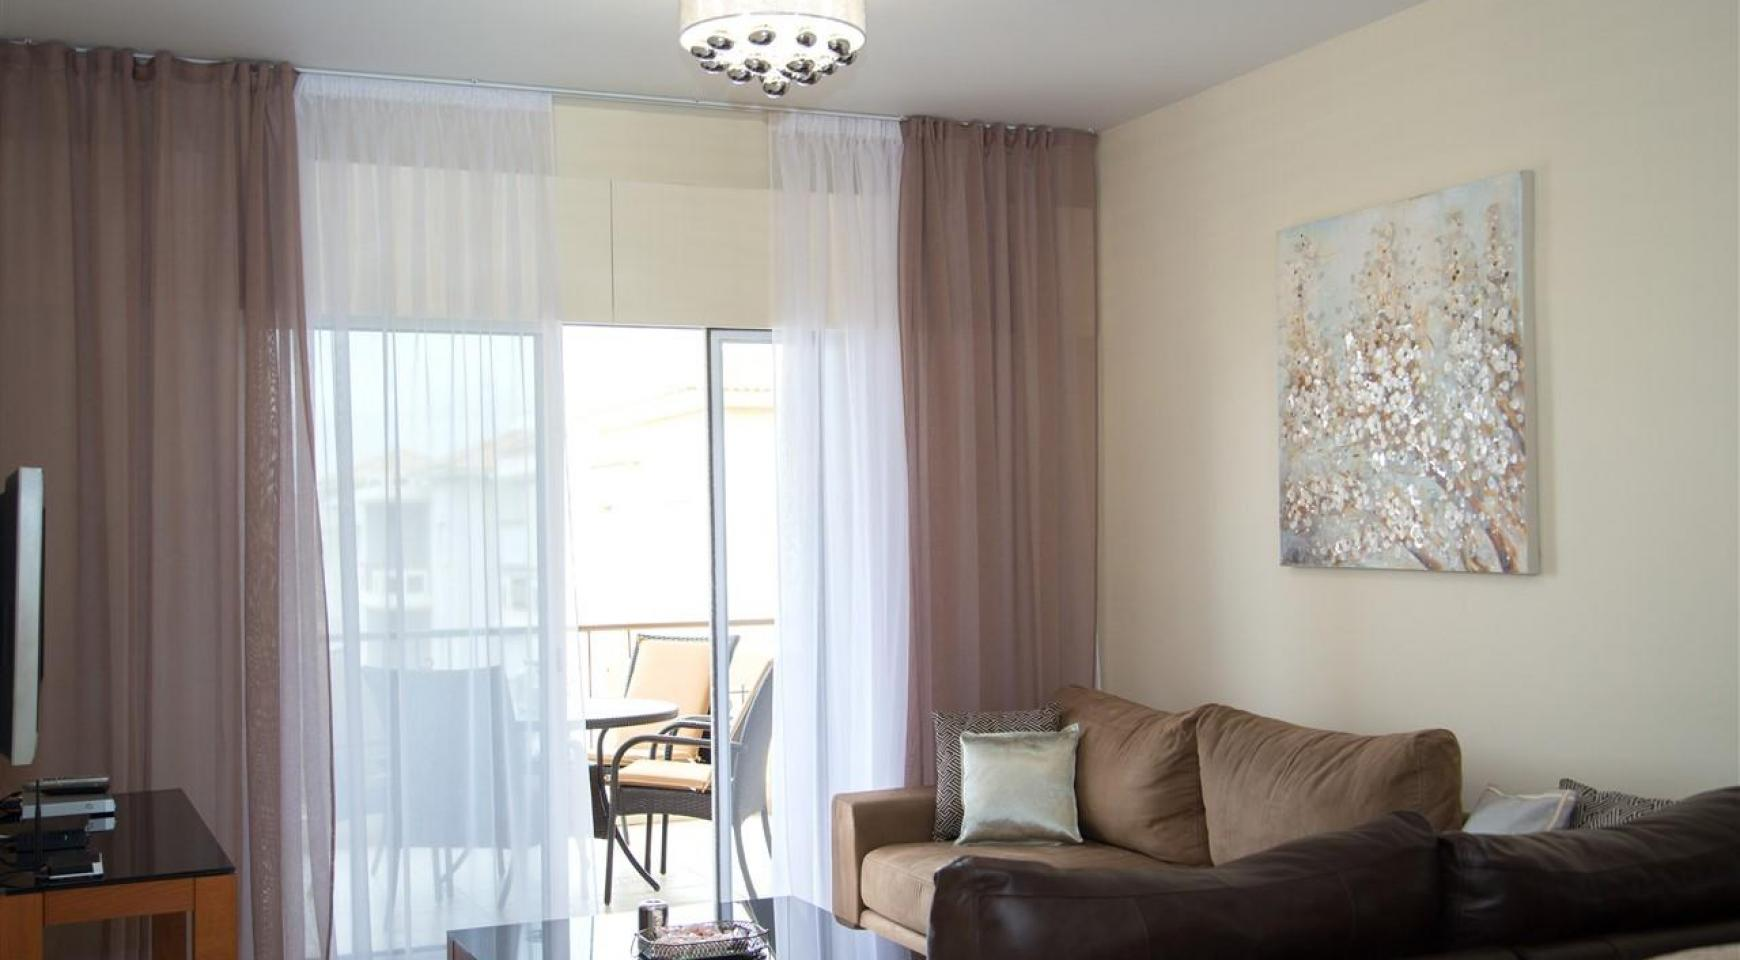 2 Bedroom Apartment Mesogios Iris 304 in the Complex near the Sea - 2